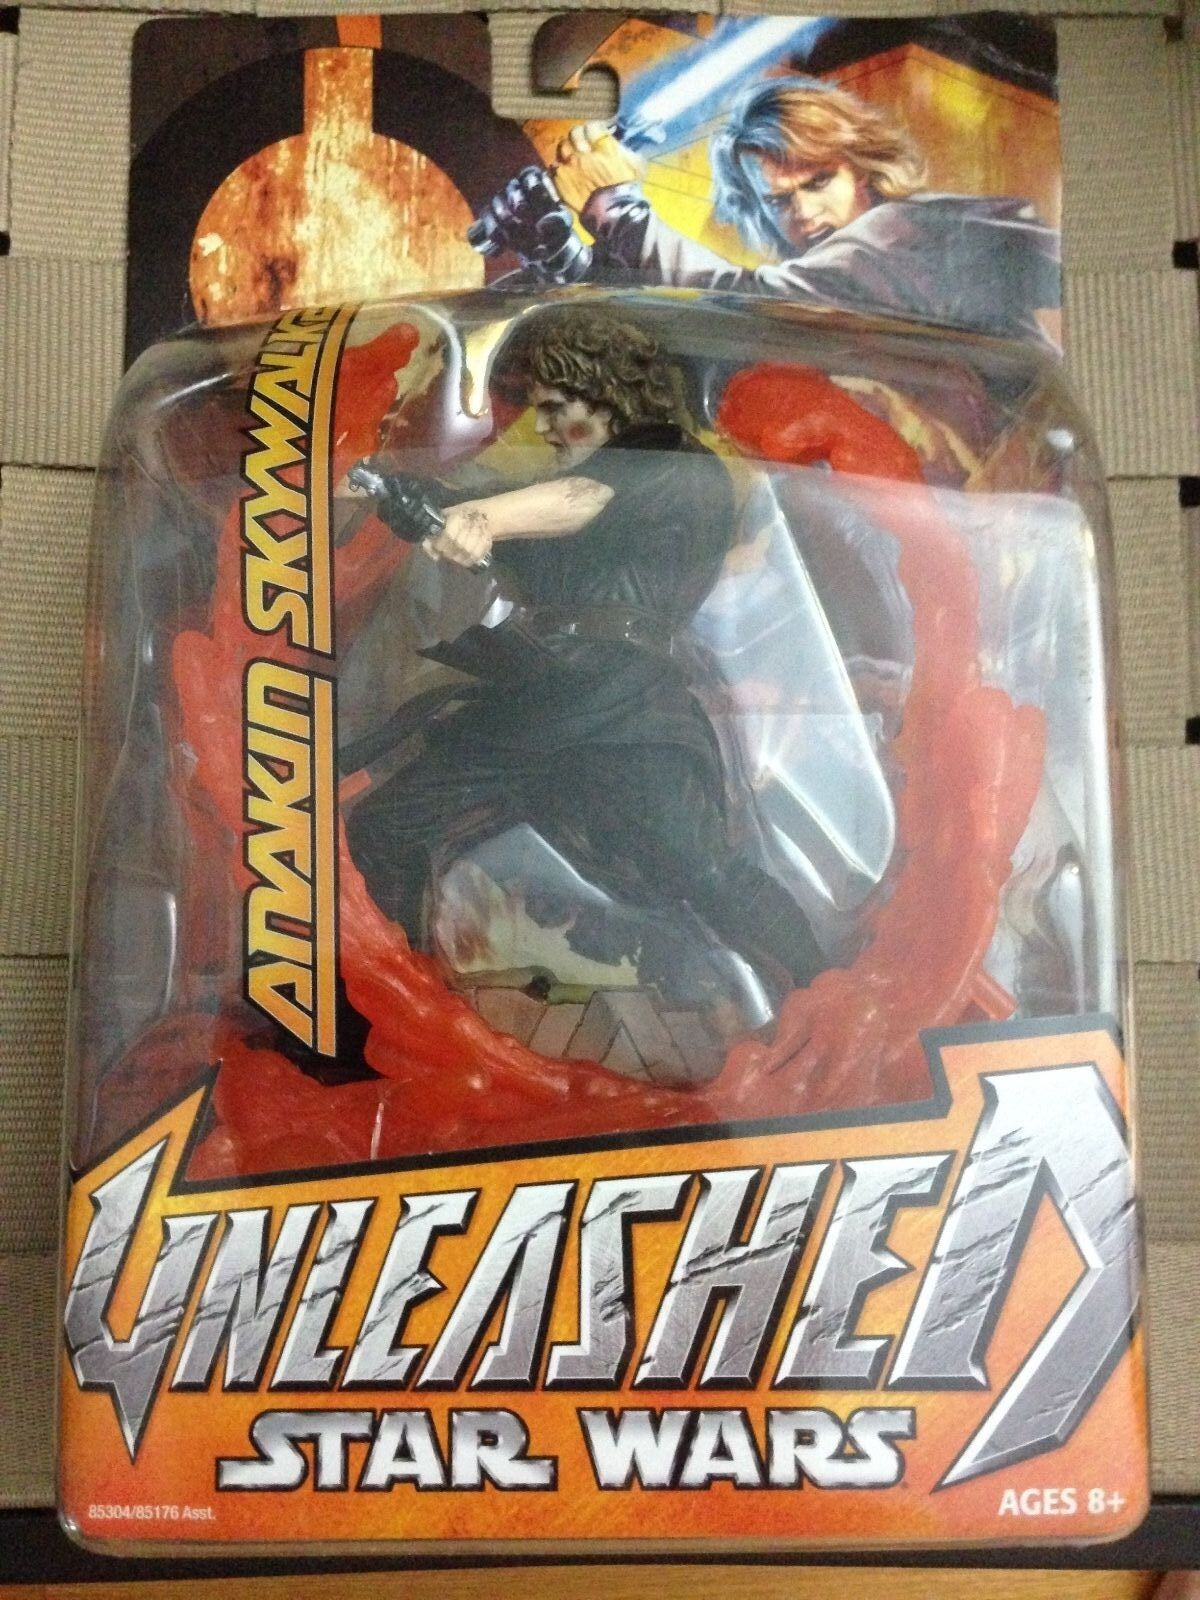 Anakin Anakin Anakin Skywalker Star Wars Unleashed SEALED MOC action figure 372eb1